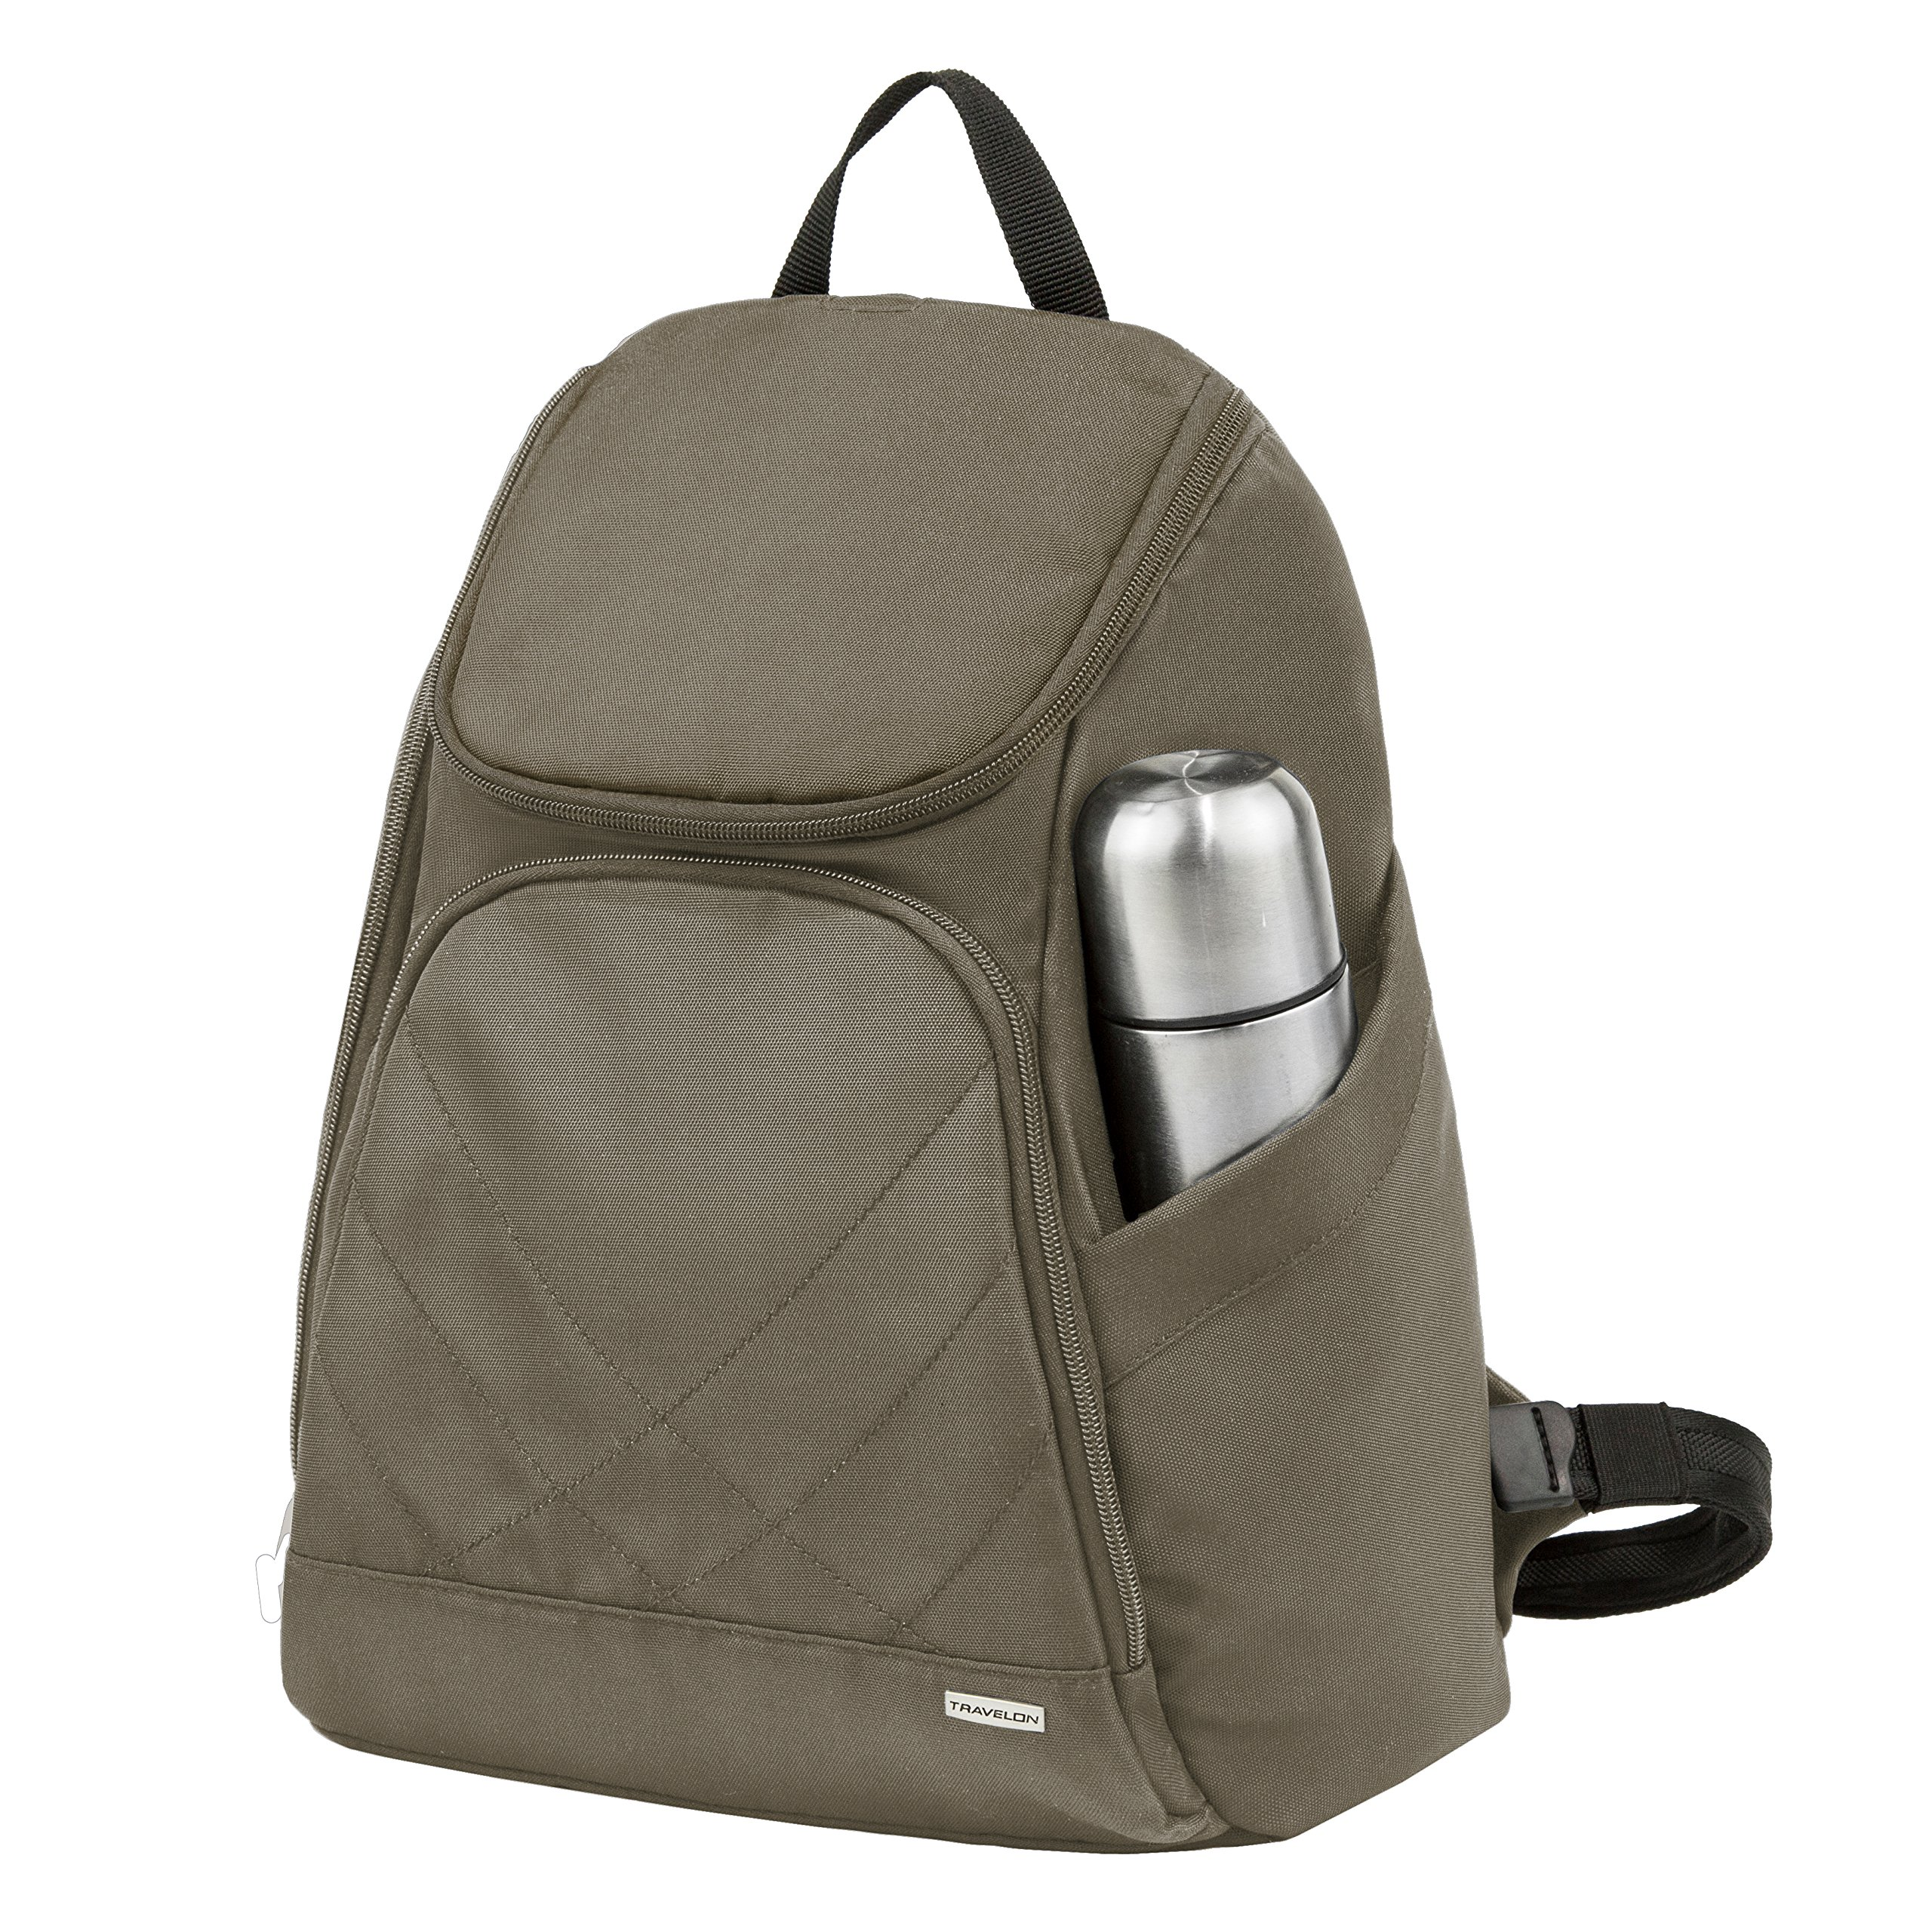 Travelon Anti Theft Classic Backpack, Nutmeg by Travelon